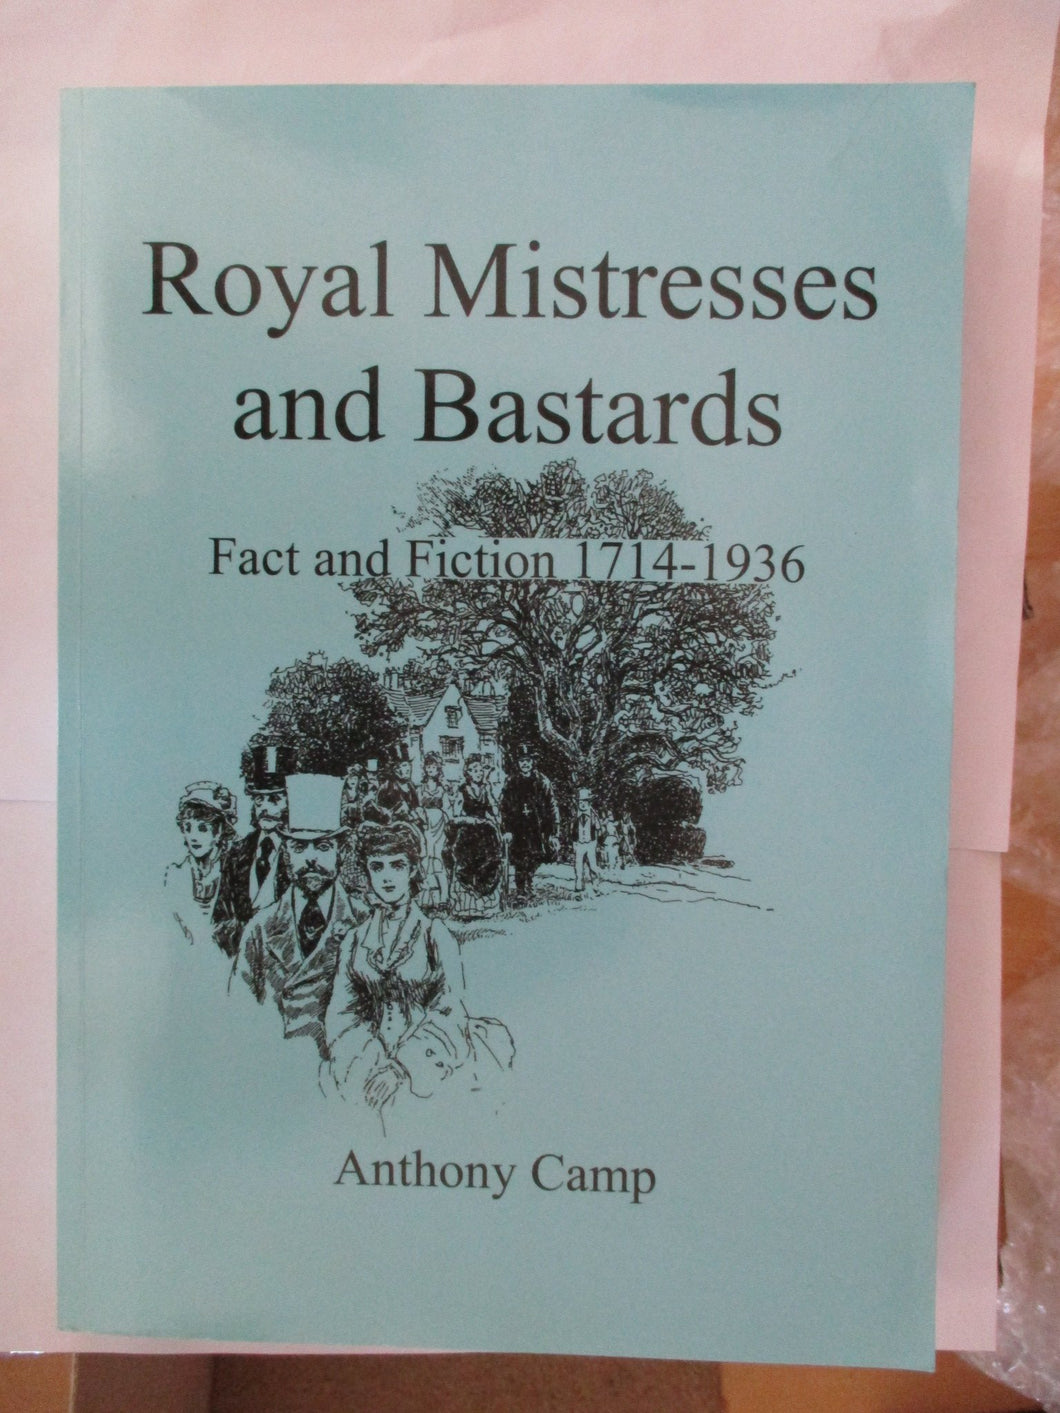 Royal Mistresses and Bastards Fact and Fiction 1714-1936